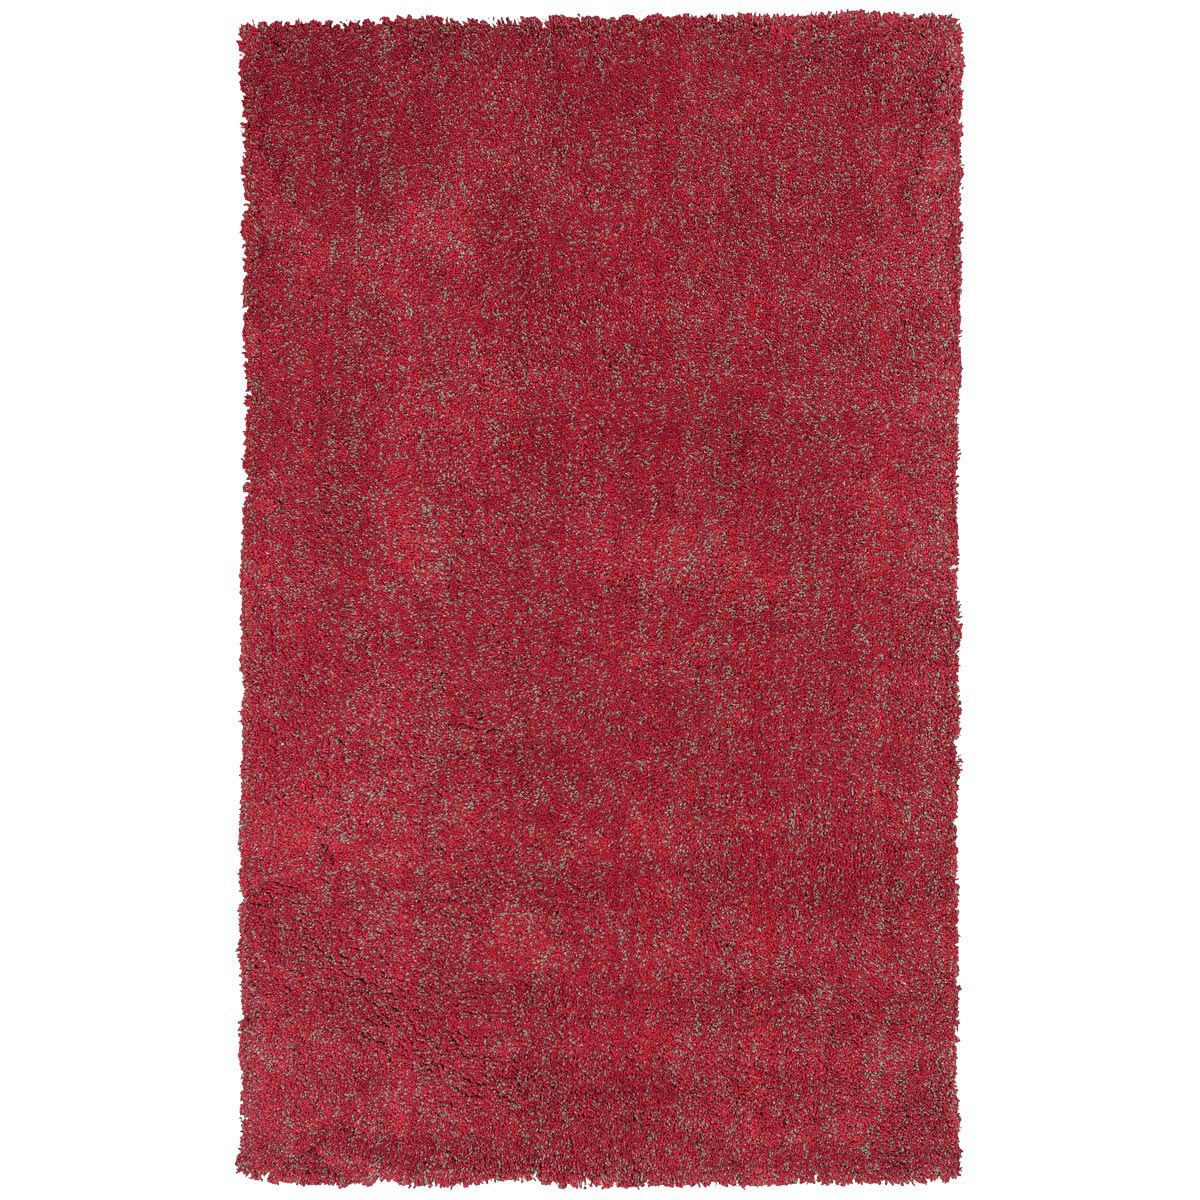 Baxter Red Rug - 9 x 13